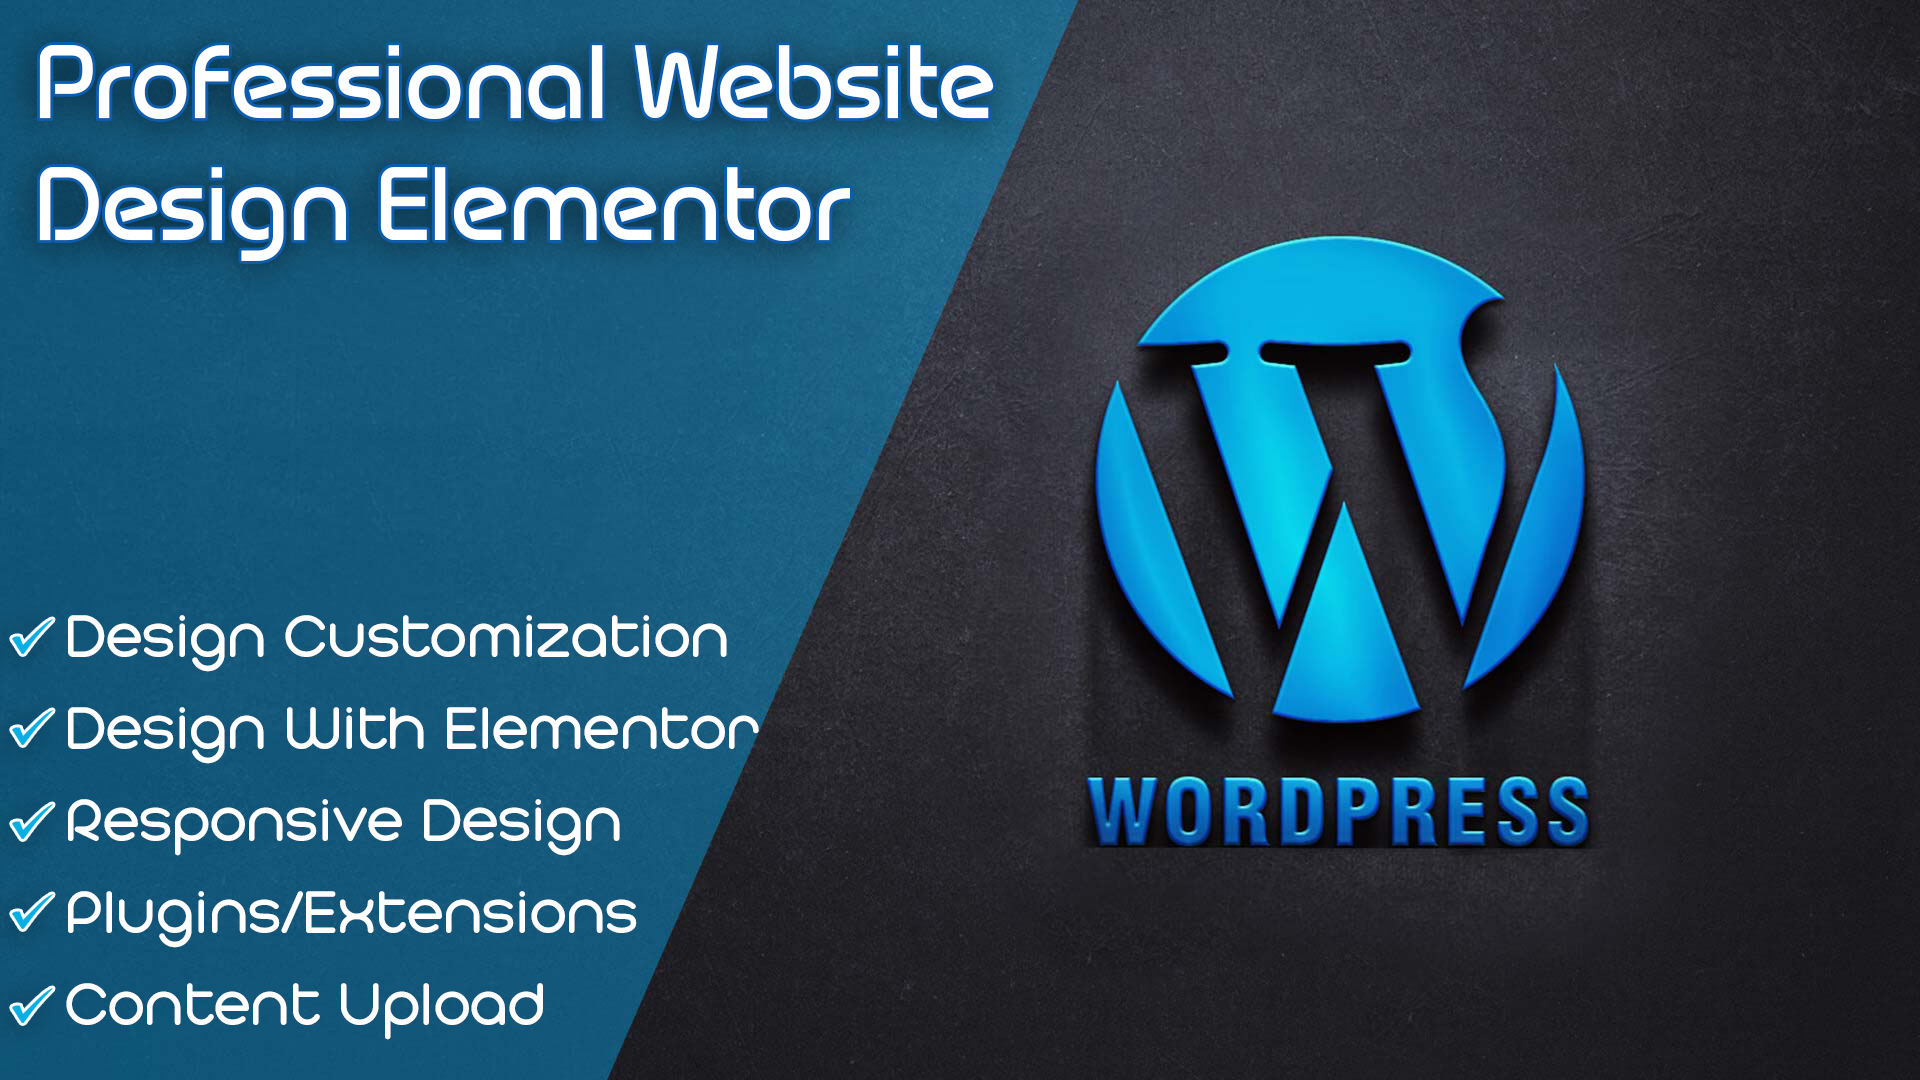 I will create professional WordPress website for business design With Elementor